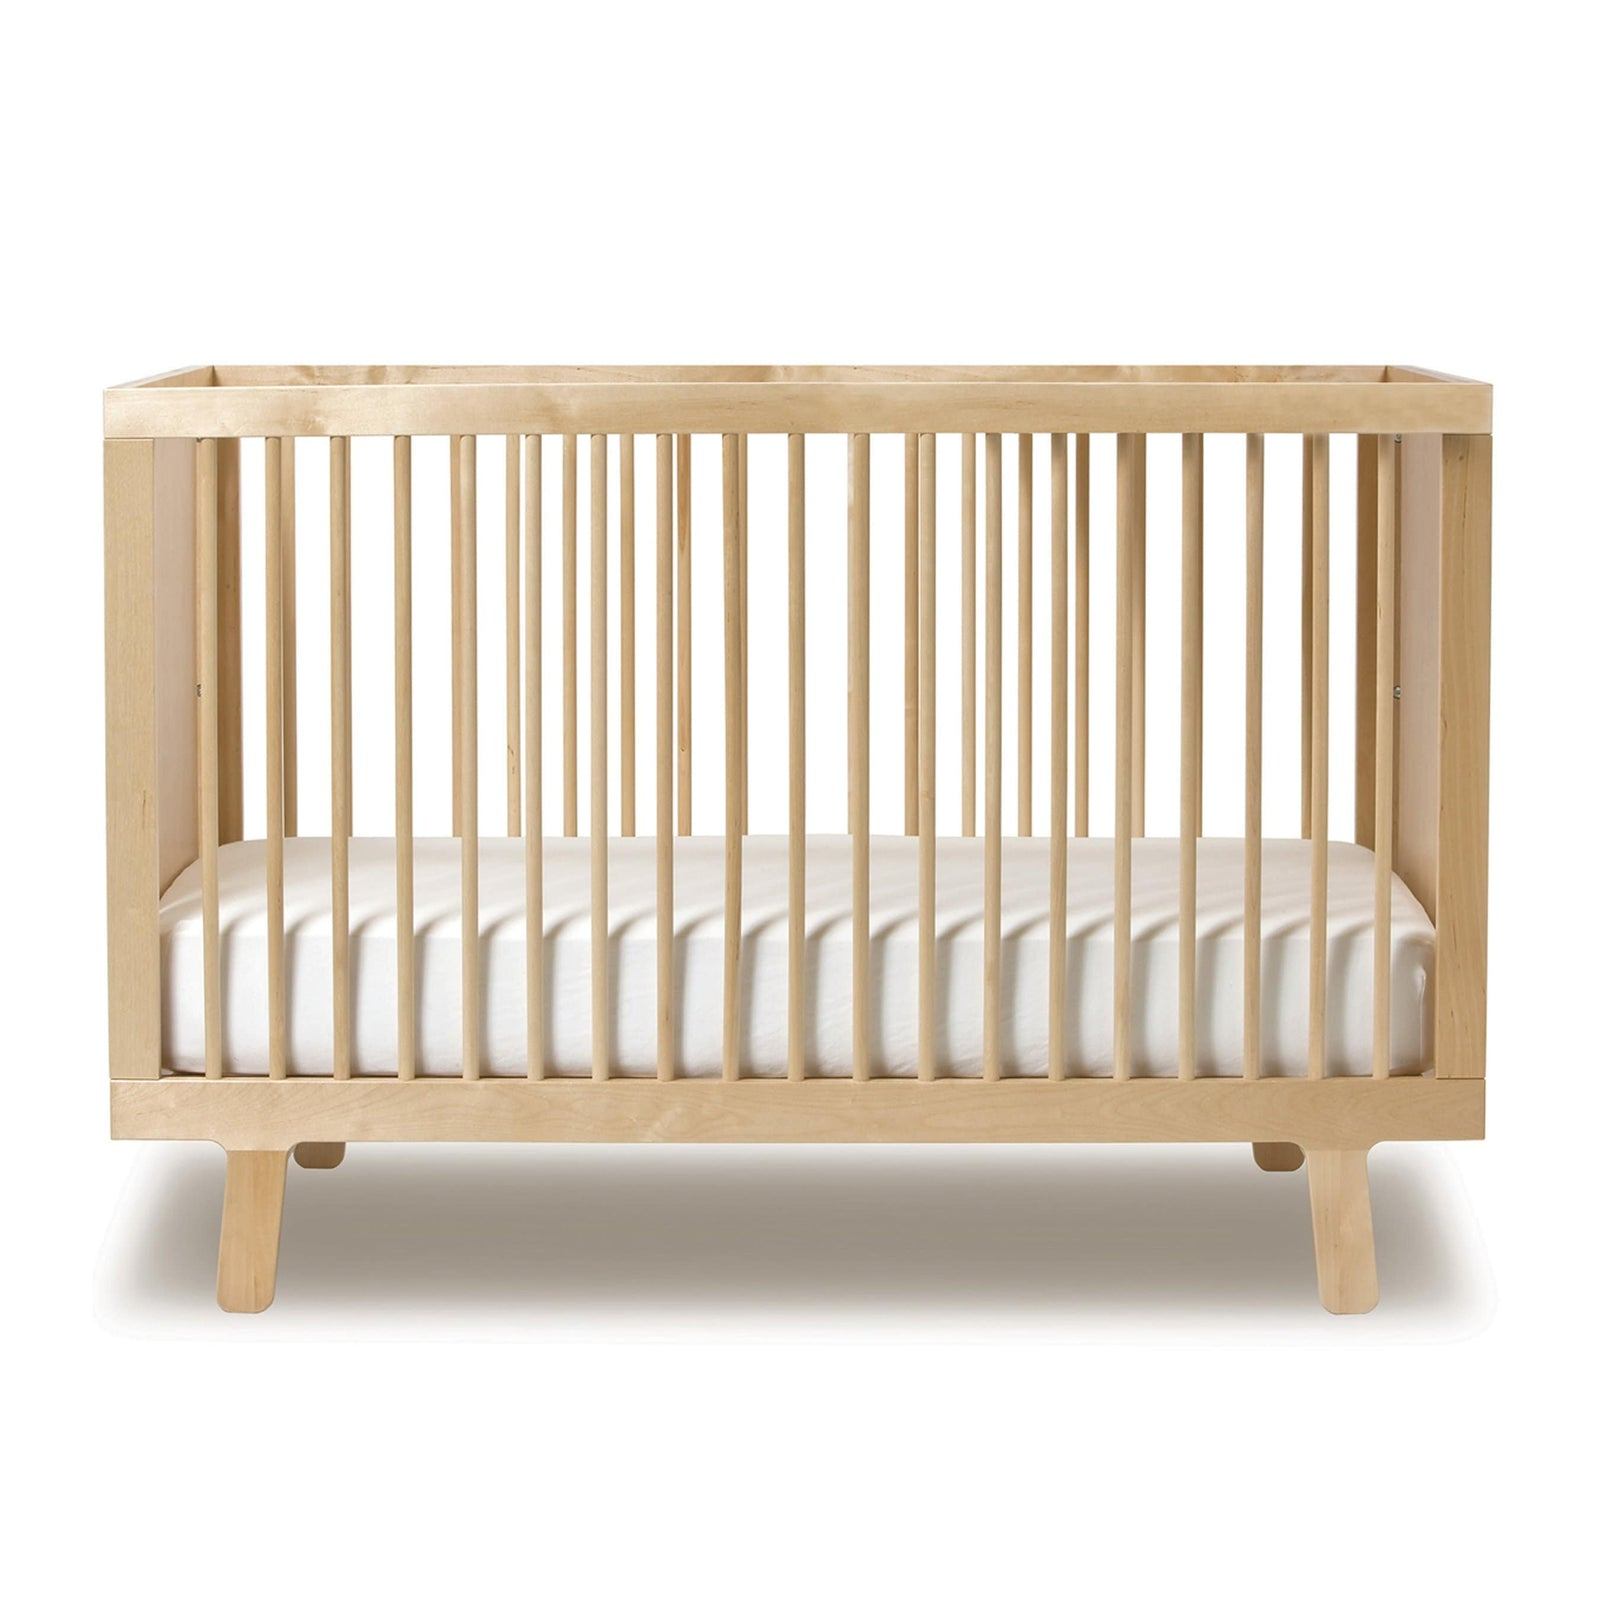 Oeuf Furniture Birch Sparrow Crib